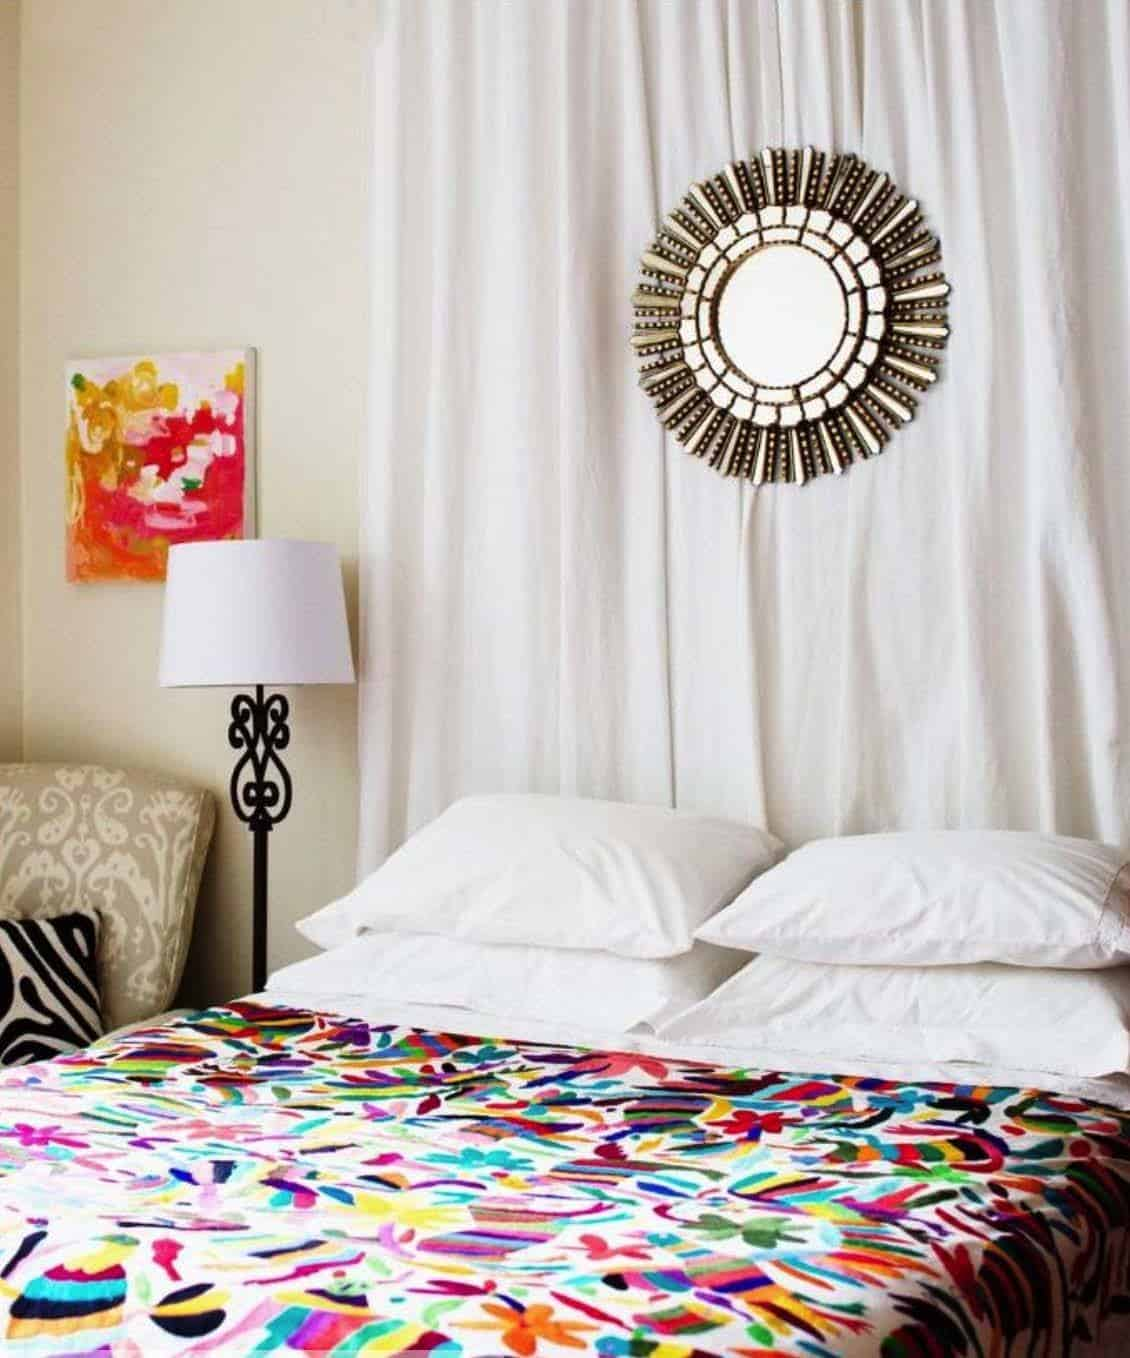 Bedroom Headboard Alternatives-24-1 Kindesign